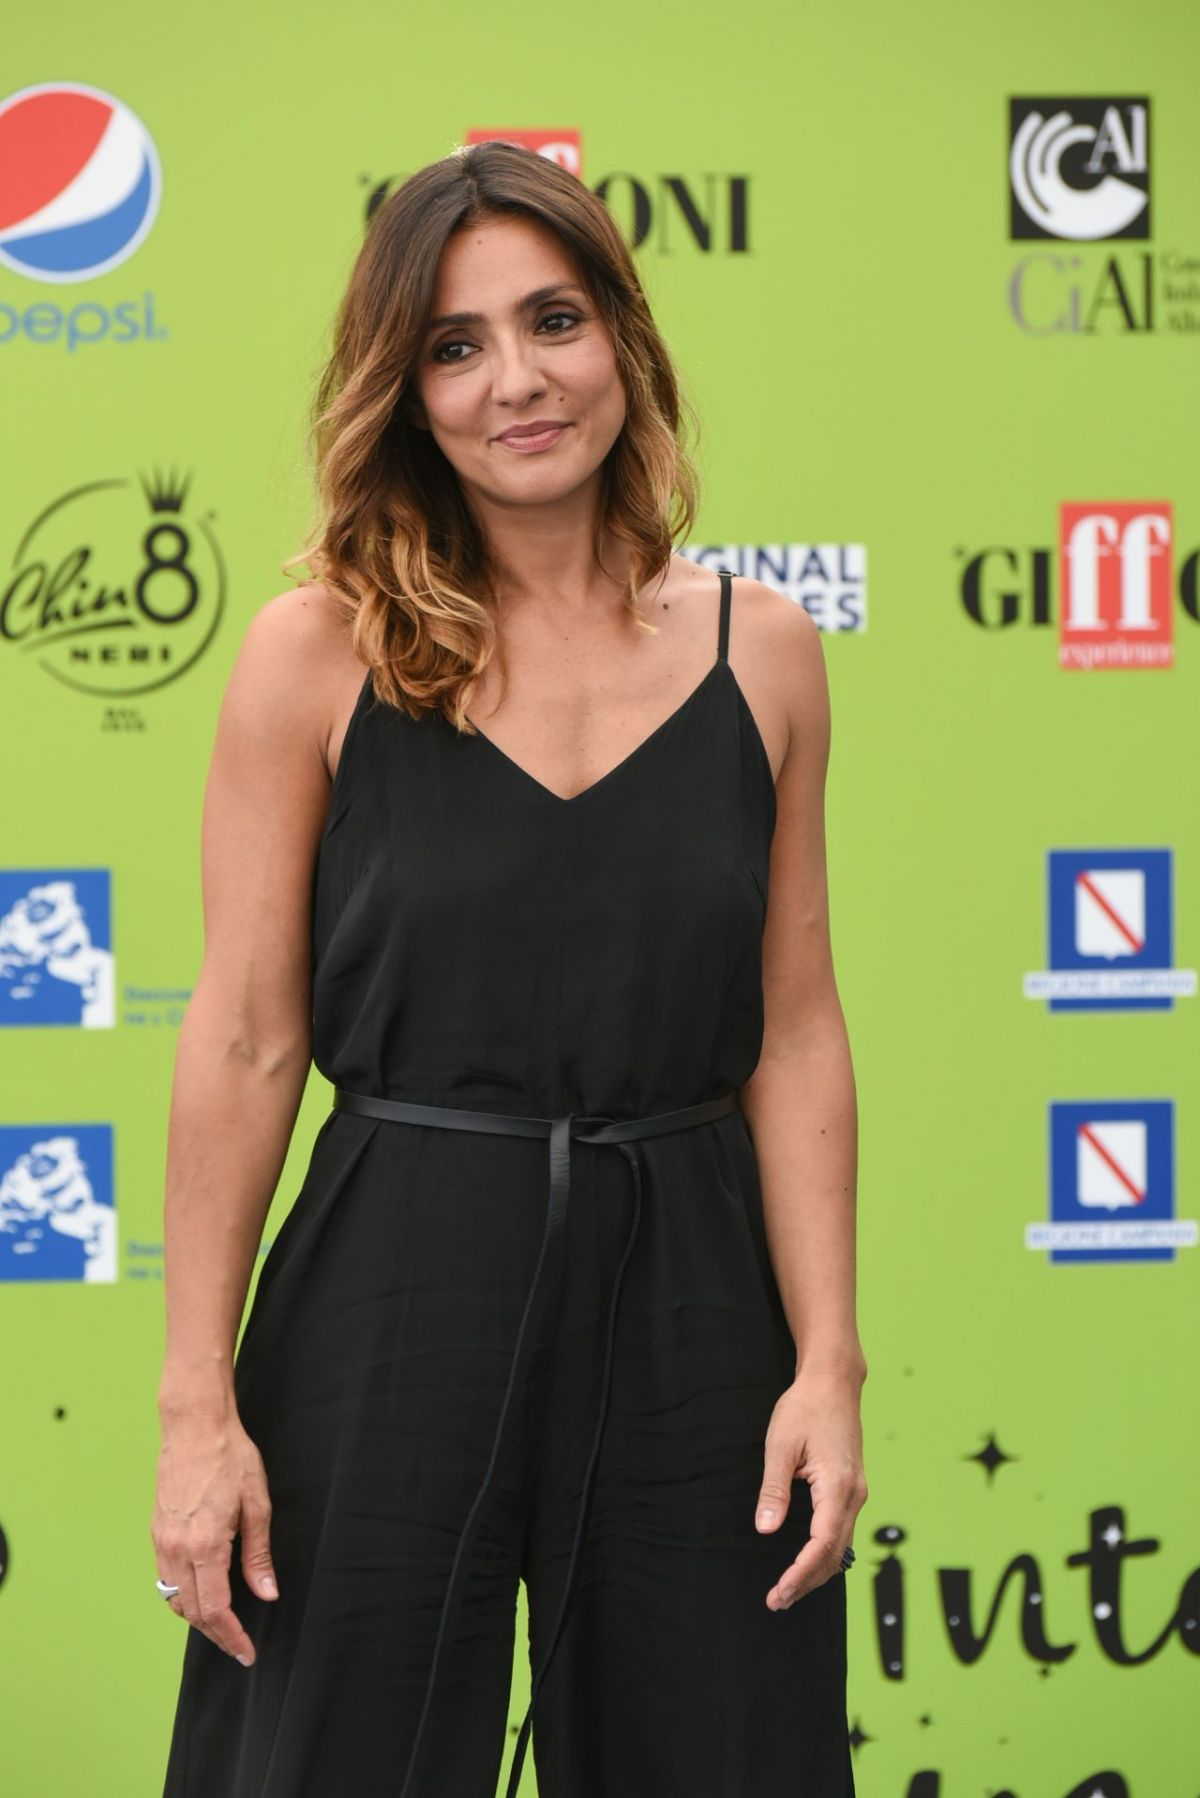 AMBRA ANGIOLINI at Giffoni Film Festival in Giffoni Valle Piana 07/21/2017